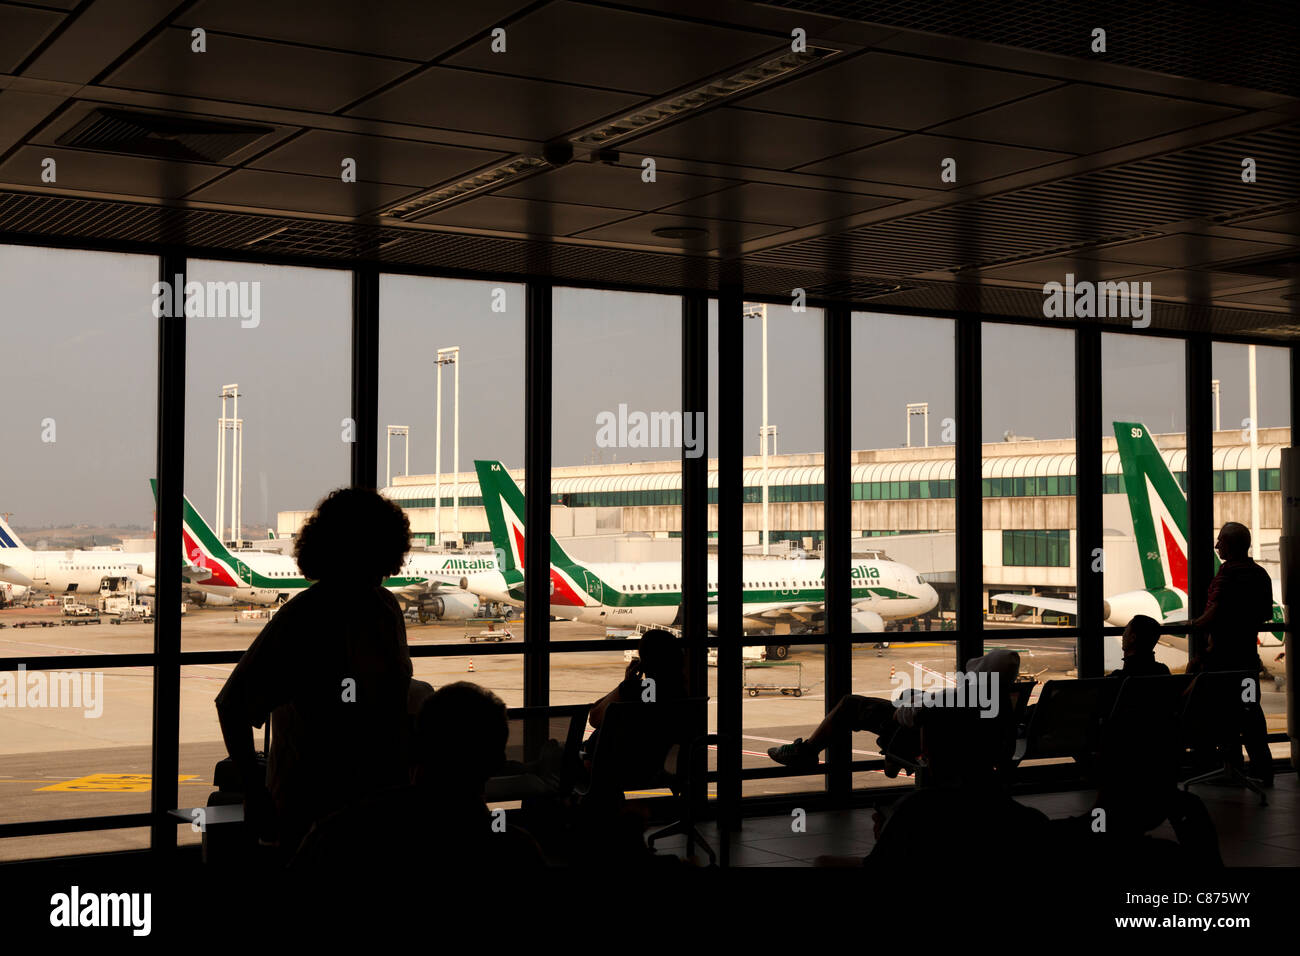 Rome Fiumicino Leonardo da Vinci airport terminal 2 interior silhouetted people and view of runway Passengers waiting - Stock Image